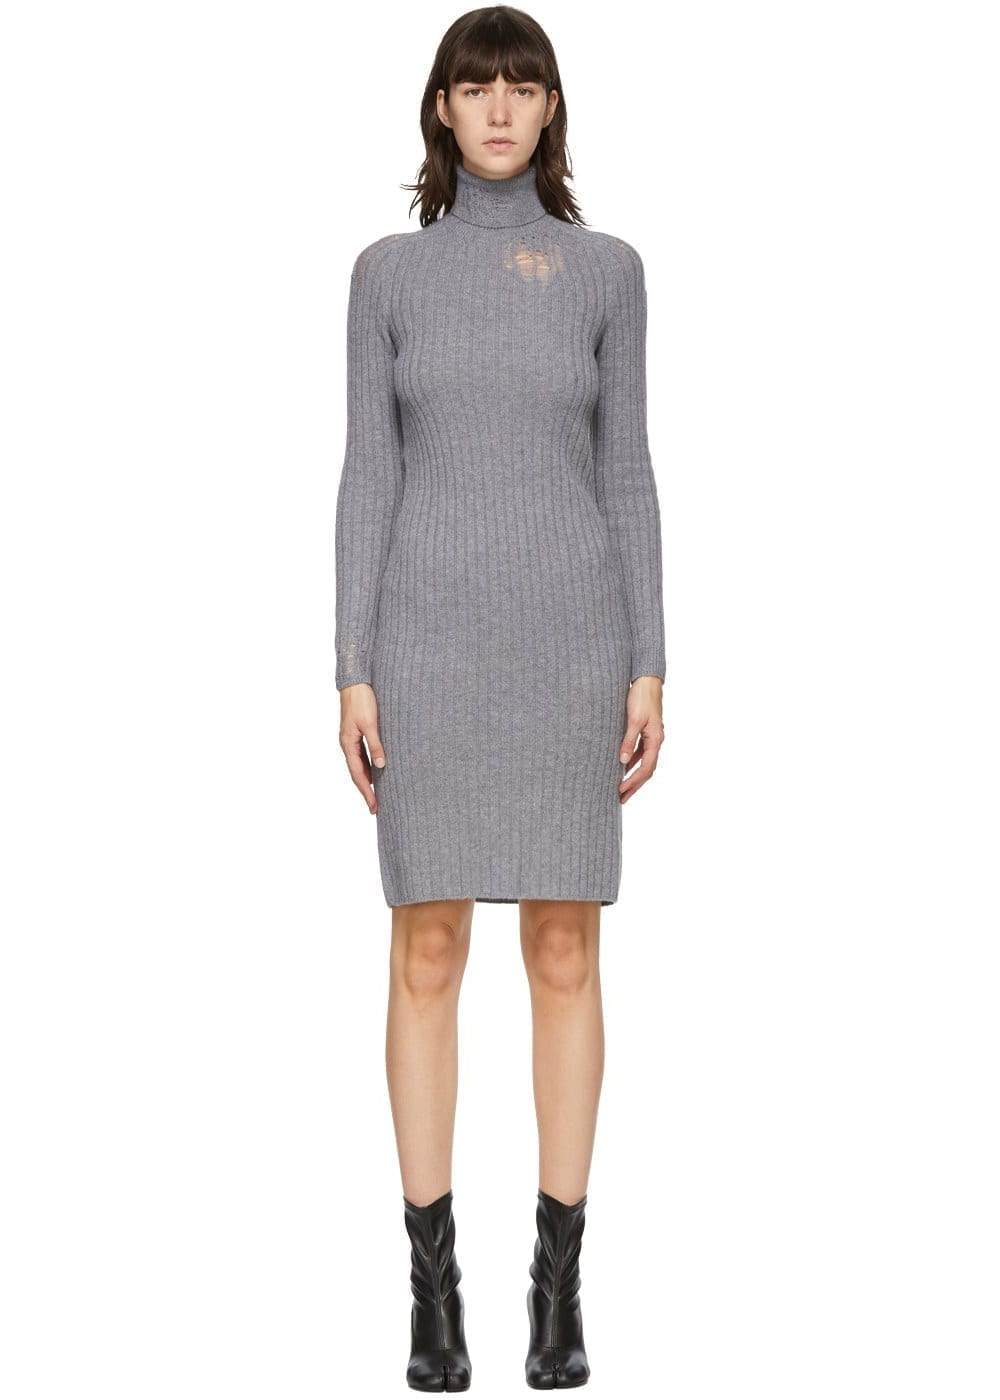 MAISON MARGIELA Grey Destroyed Turtleneck Dress